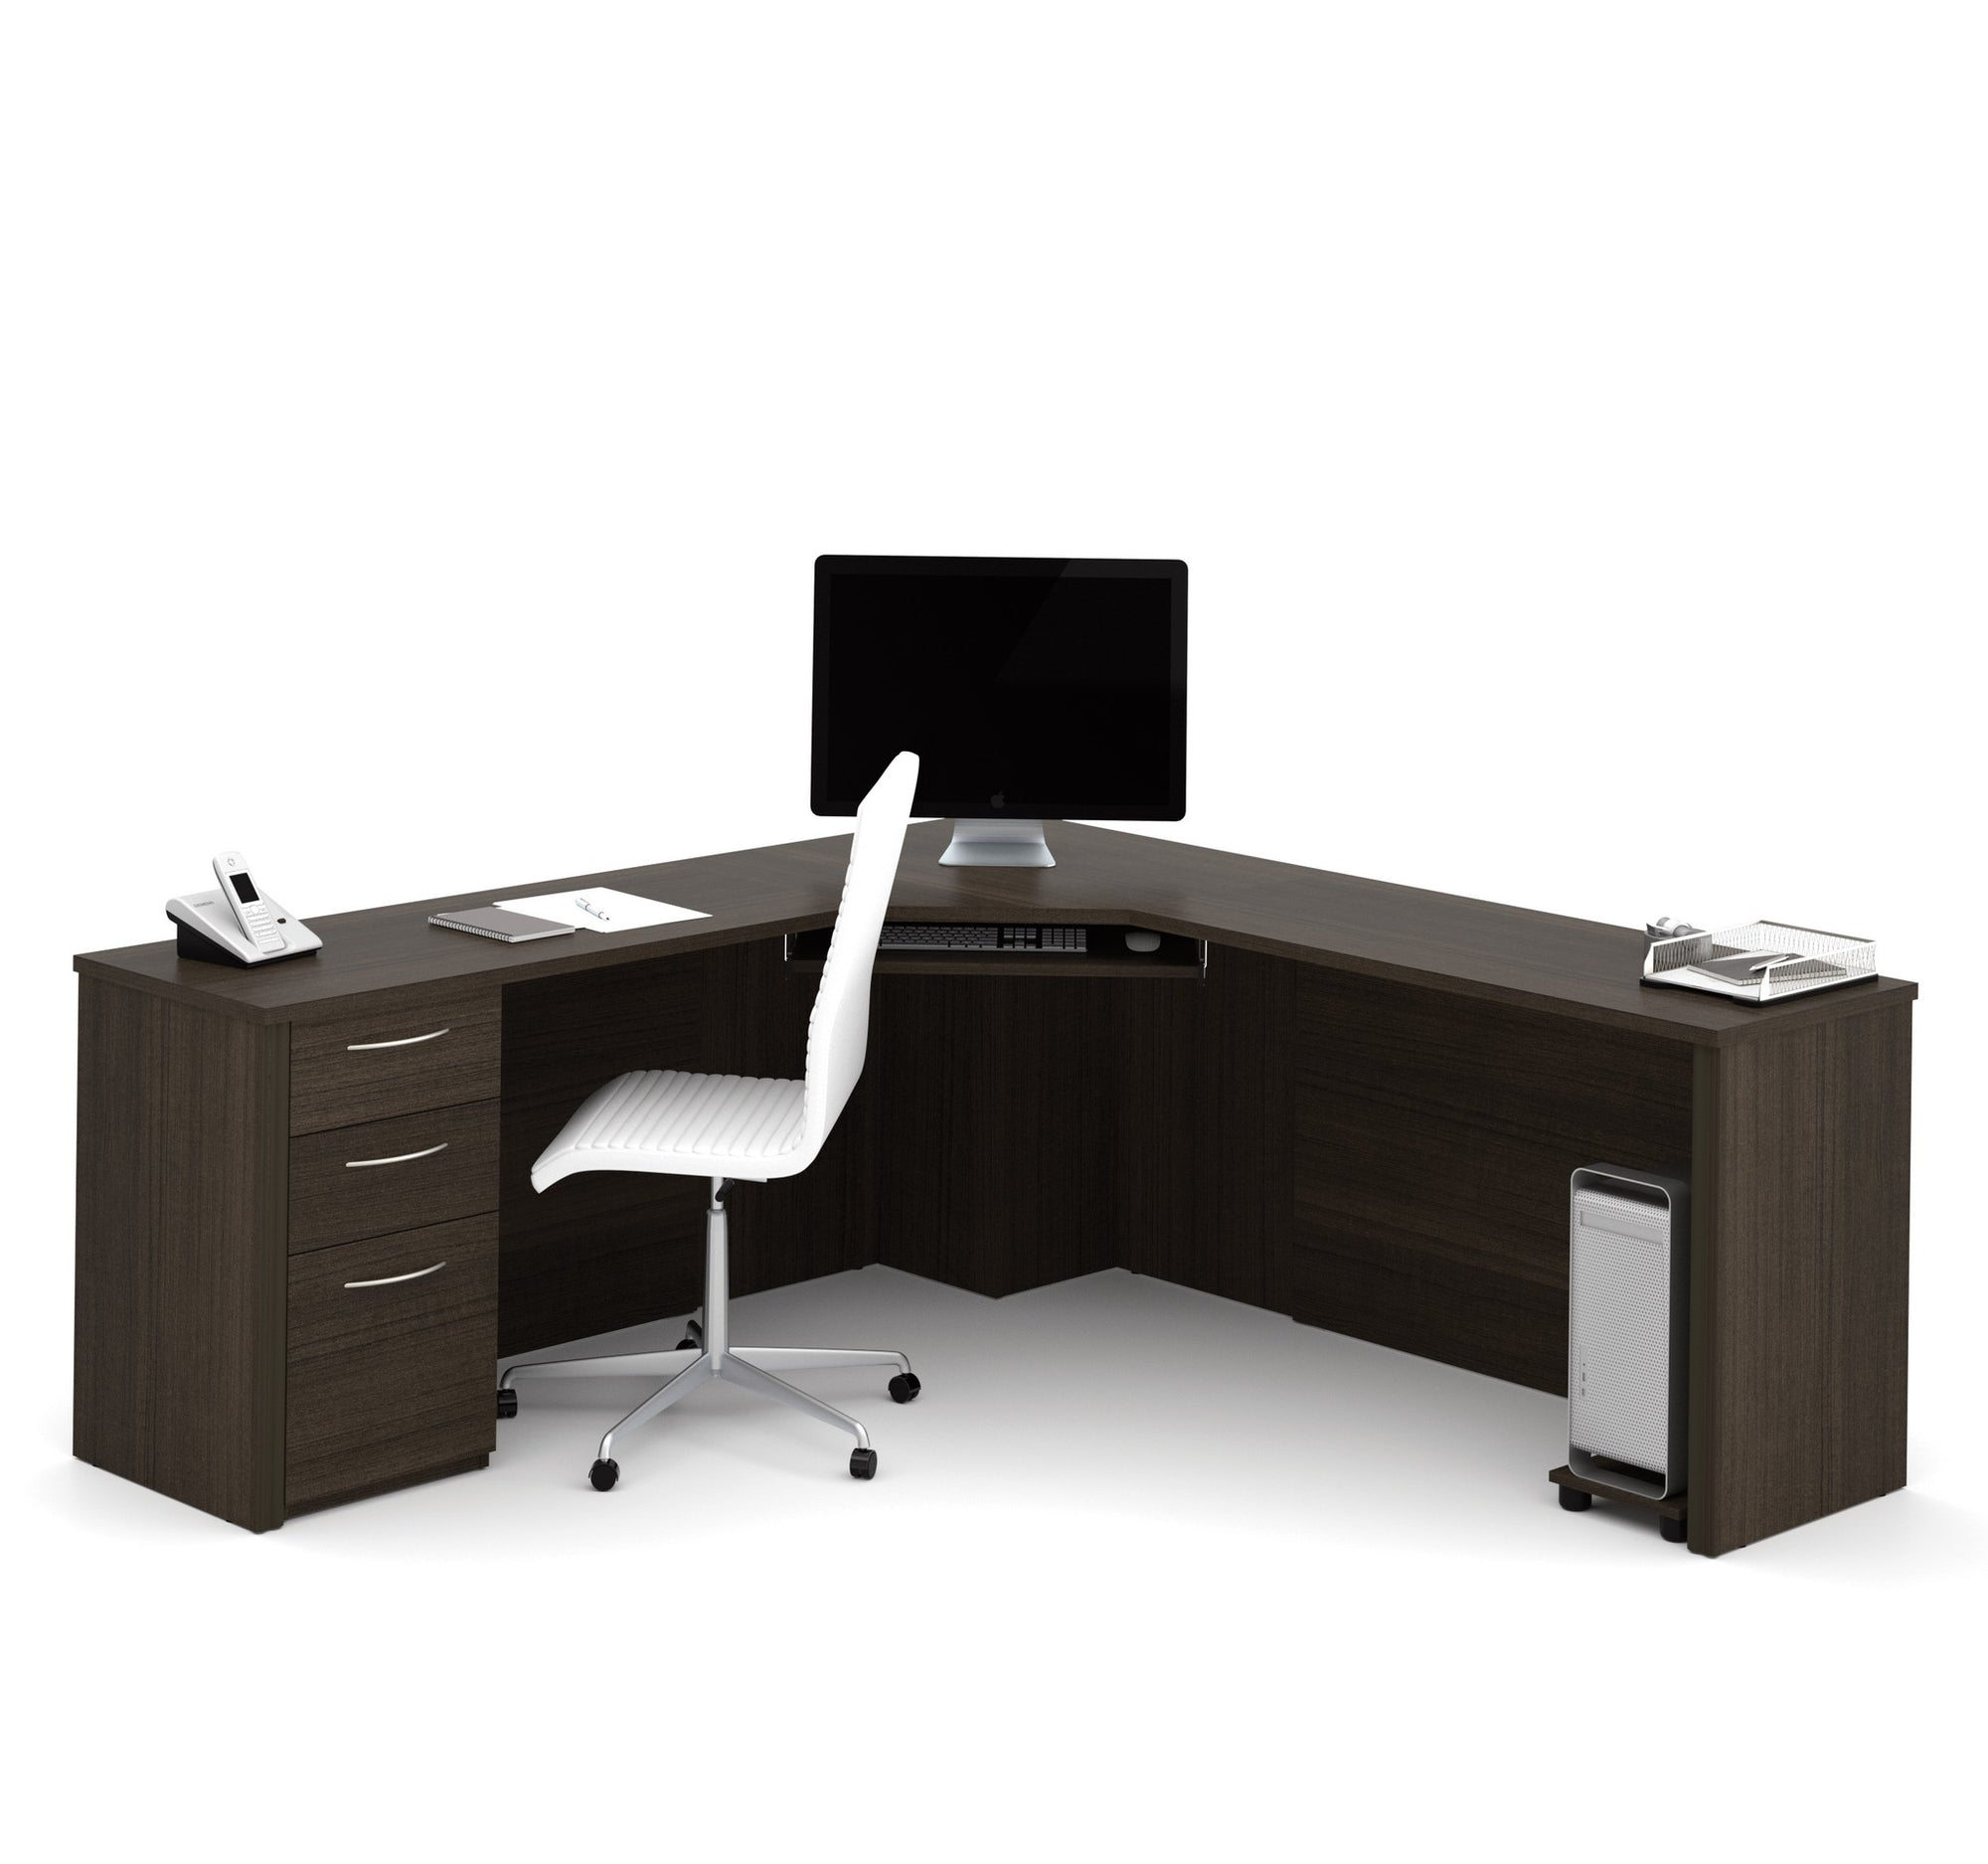 78 X 78 Modern Corner Office Desk In Dark Chocolate Officedeskcom